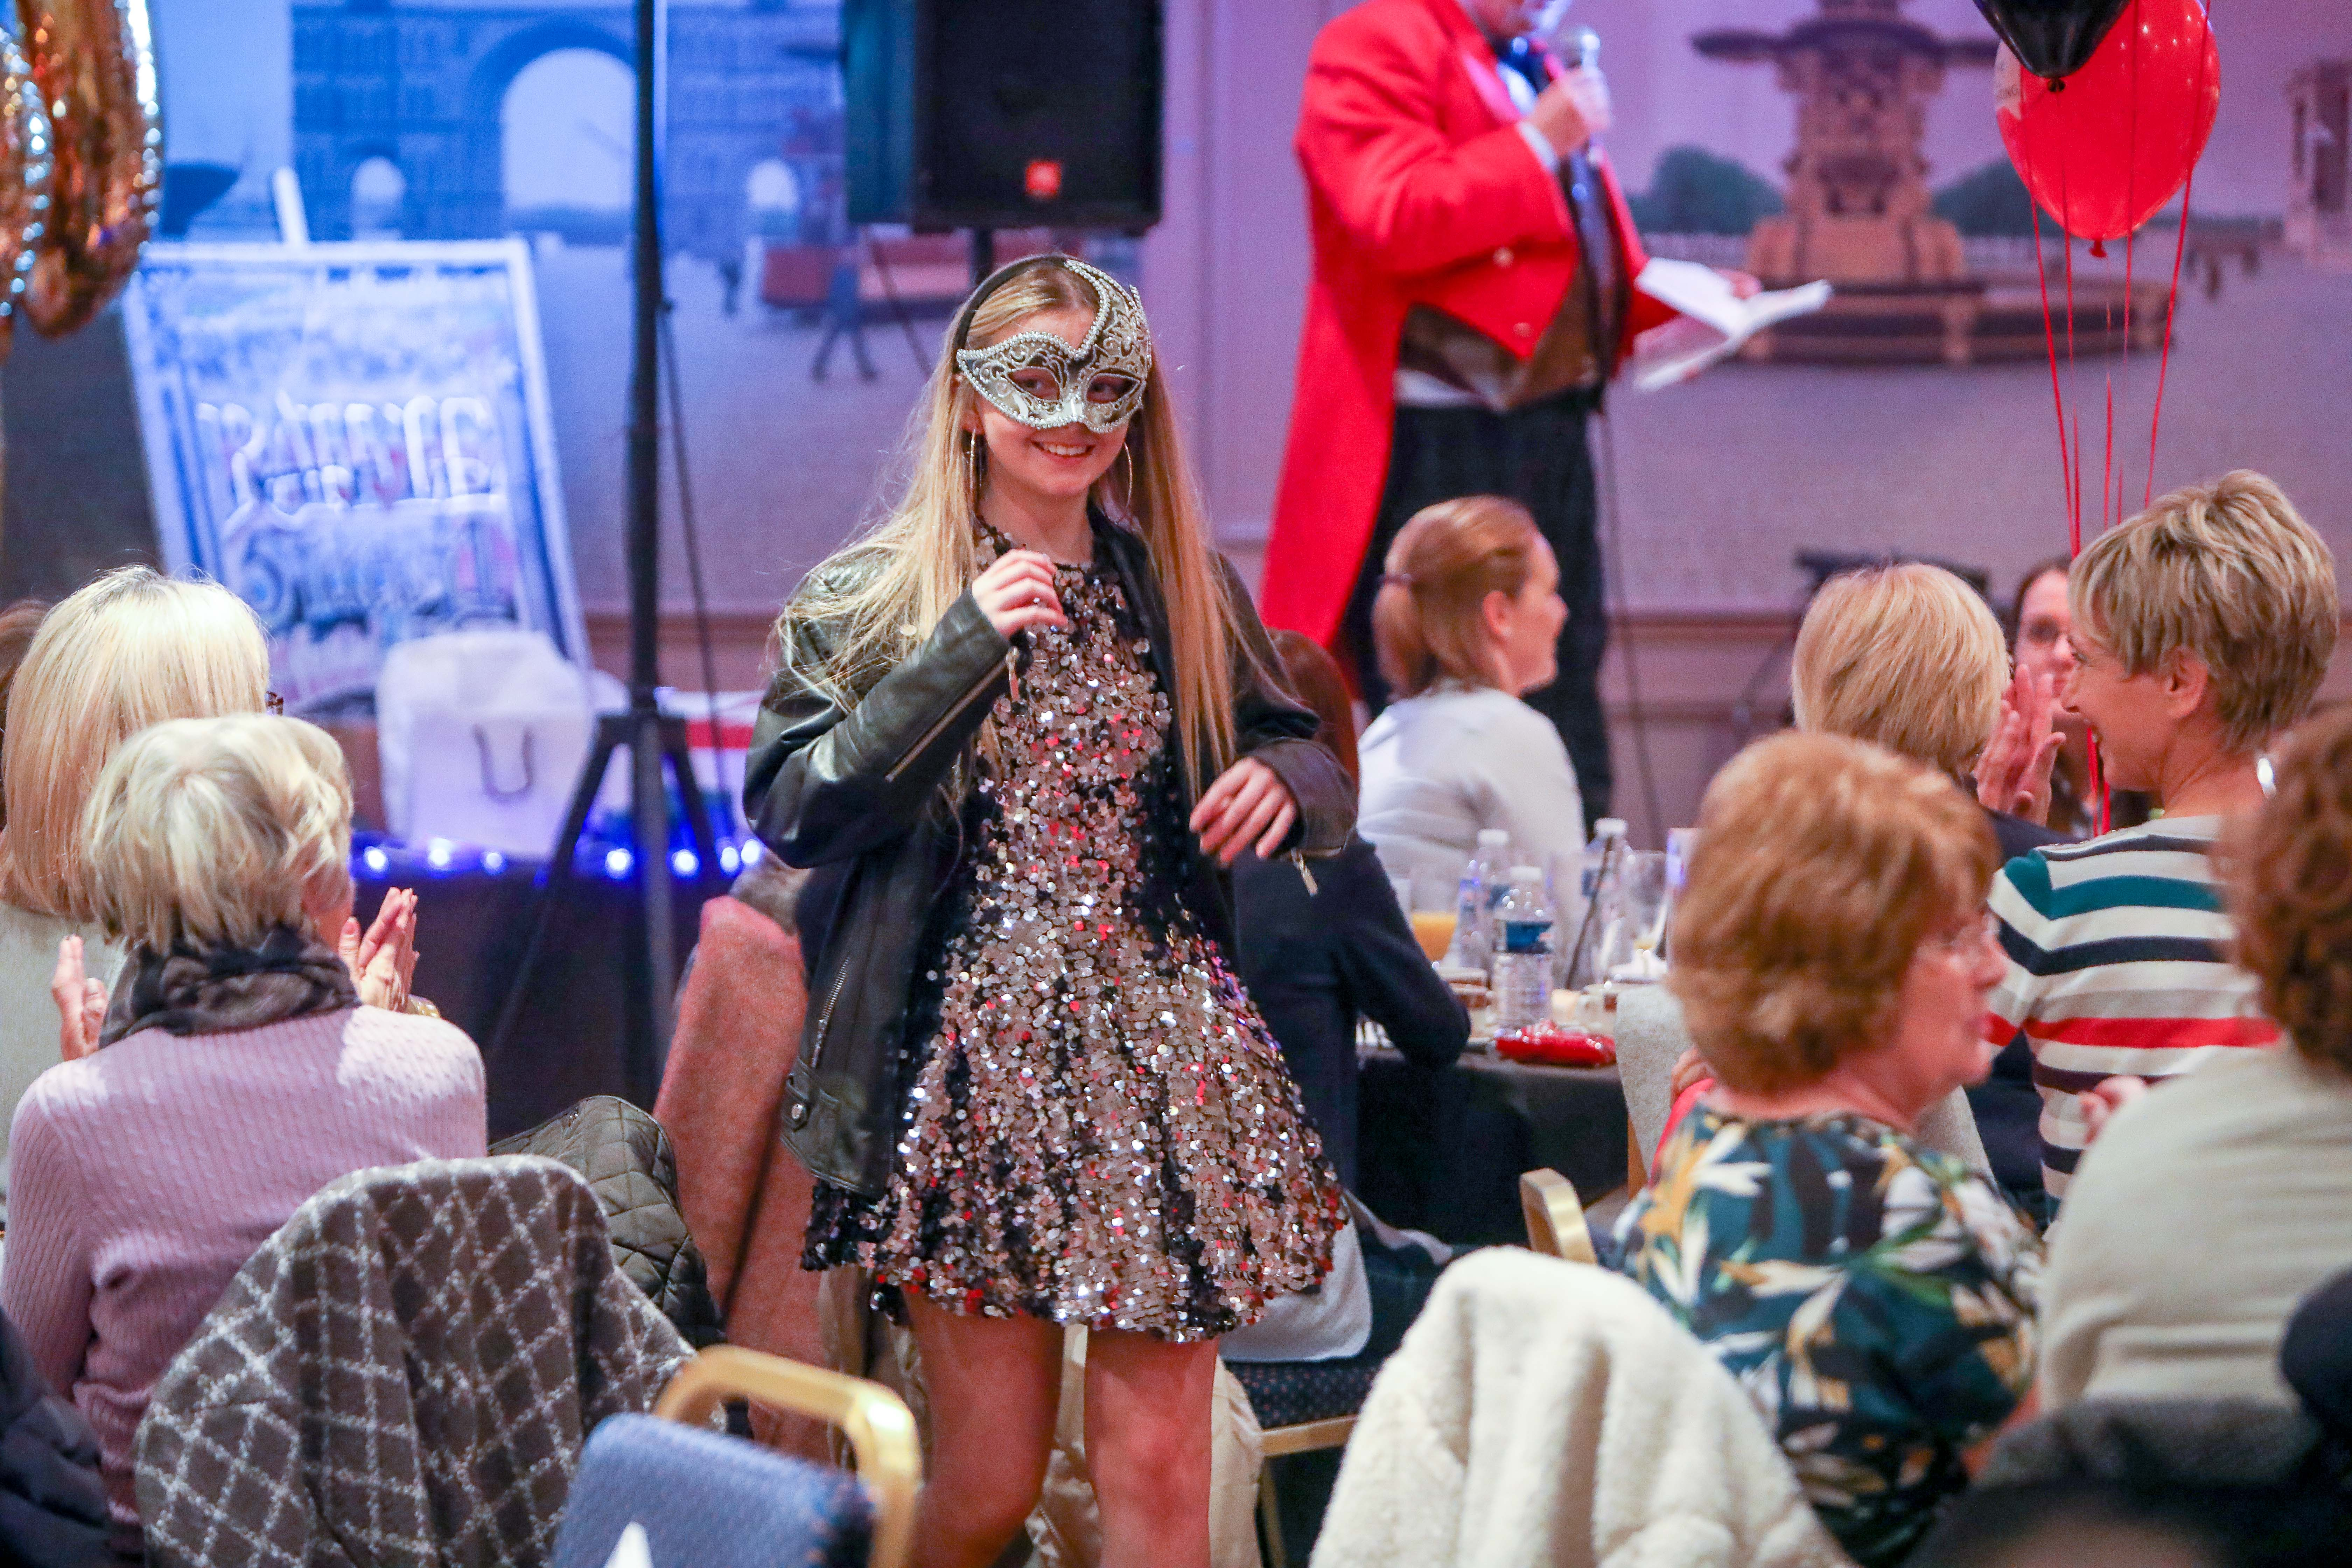 A model at the Shelter Scotland fashion show